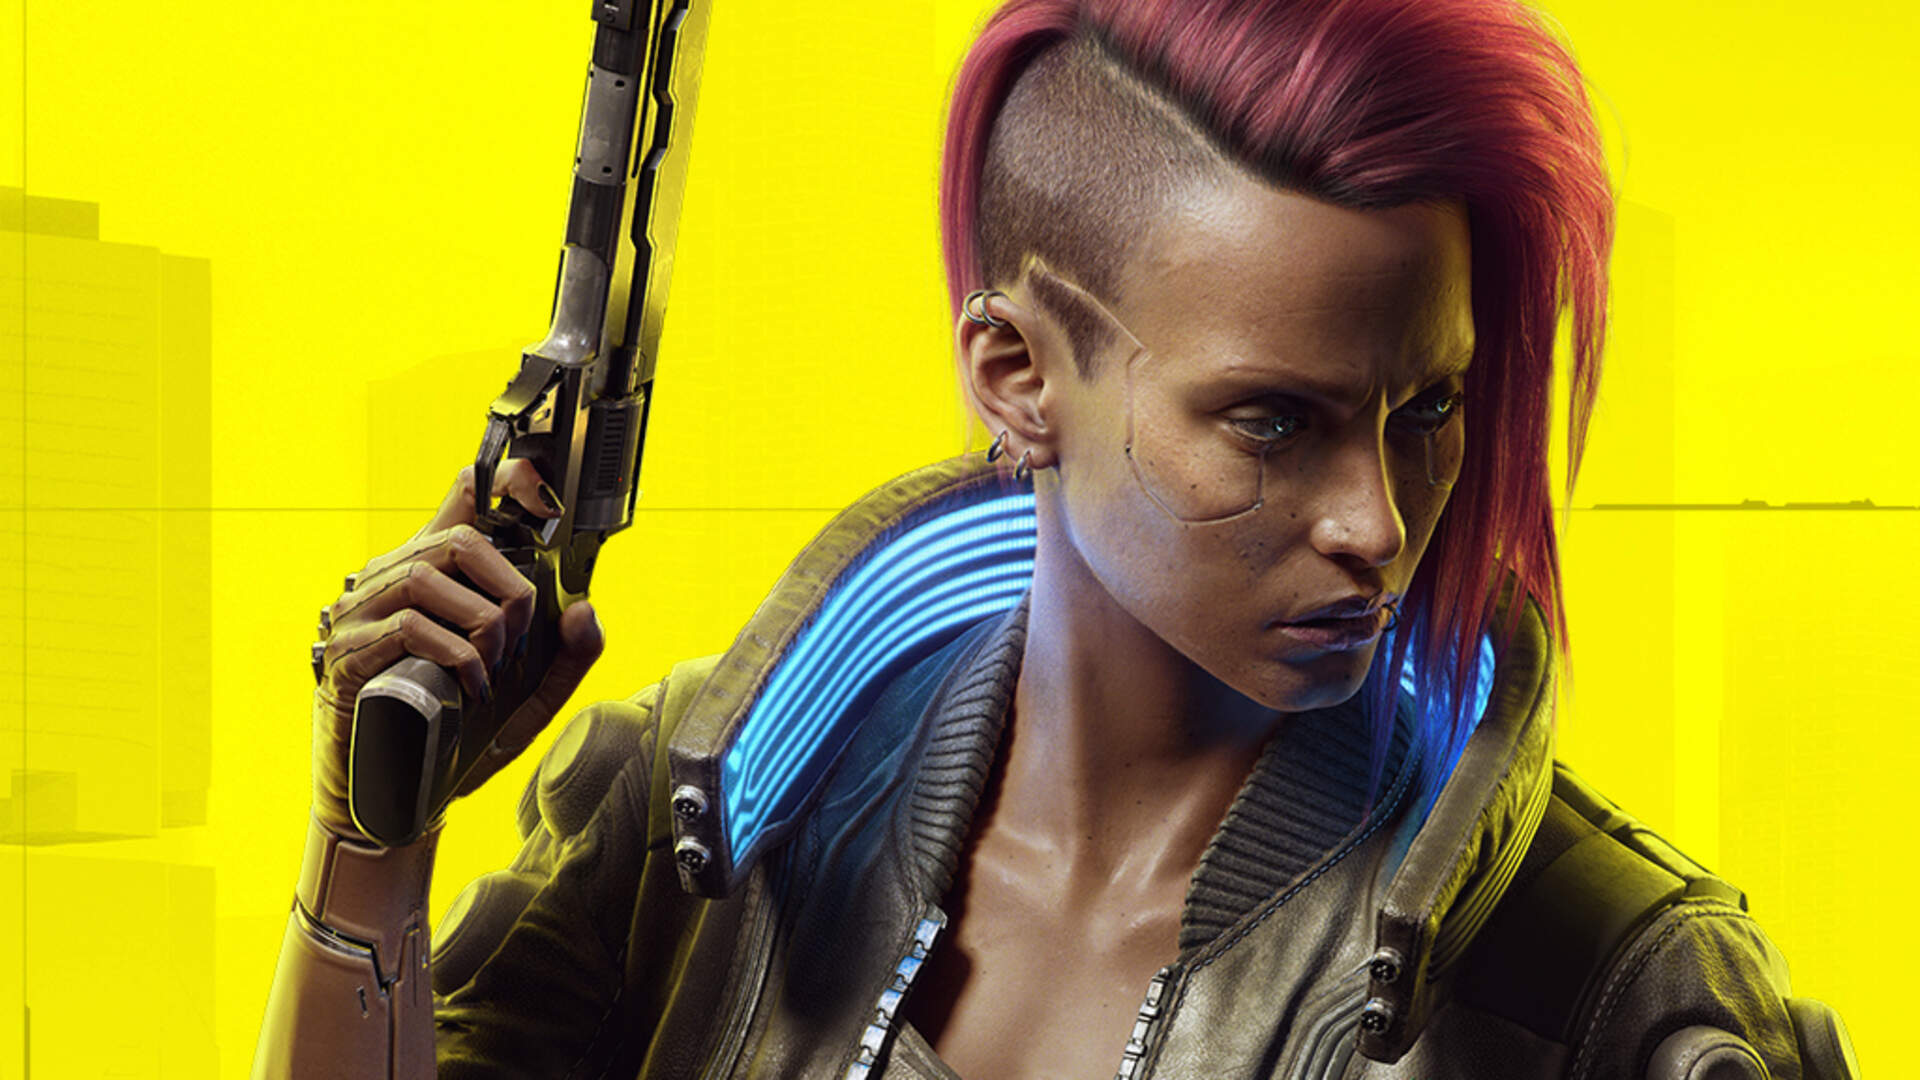 Cyberpunk 2077 on Xbox Game Pass Tweet Quickly Dismissed as False Alarm